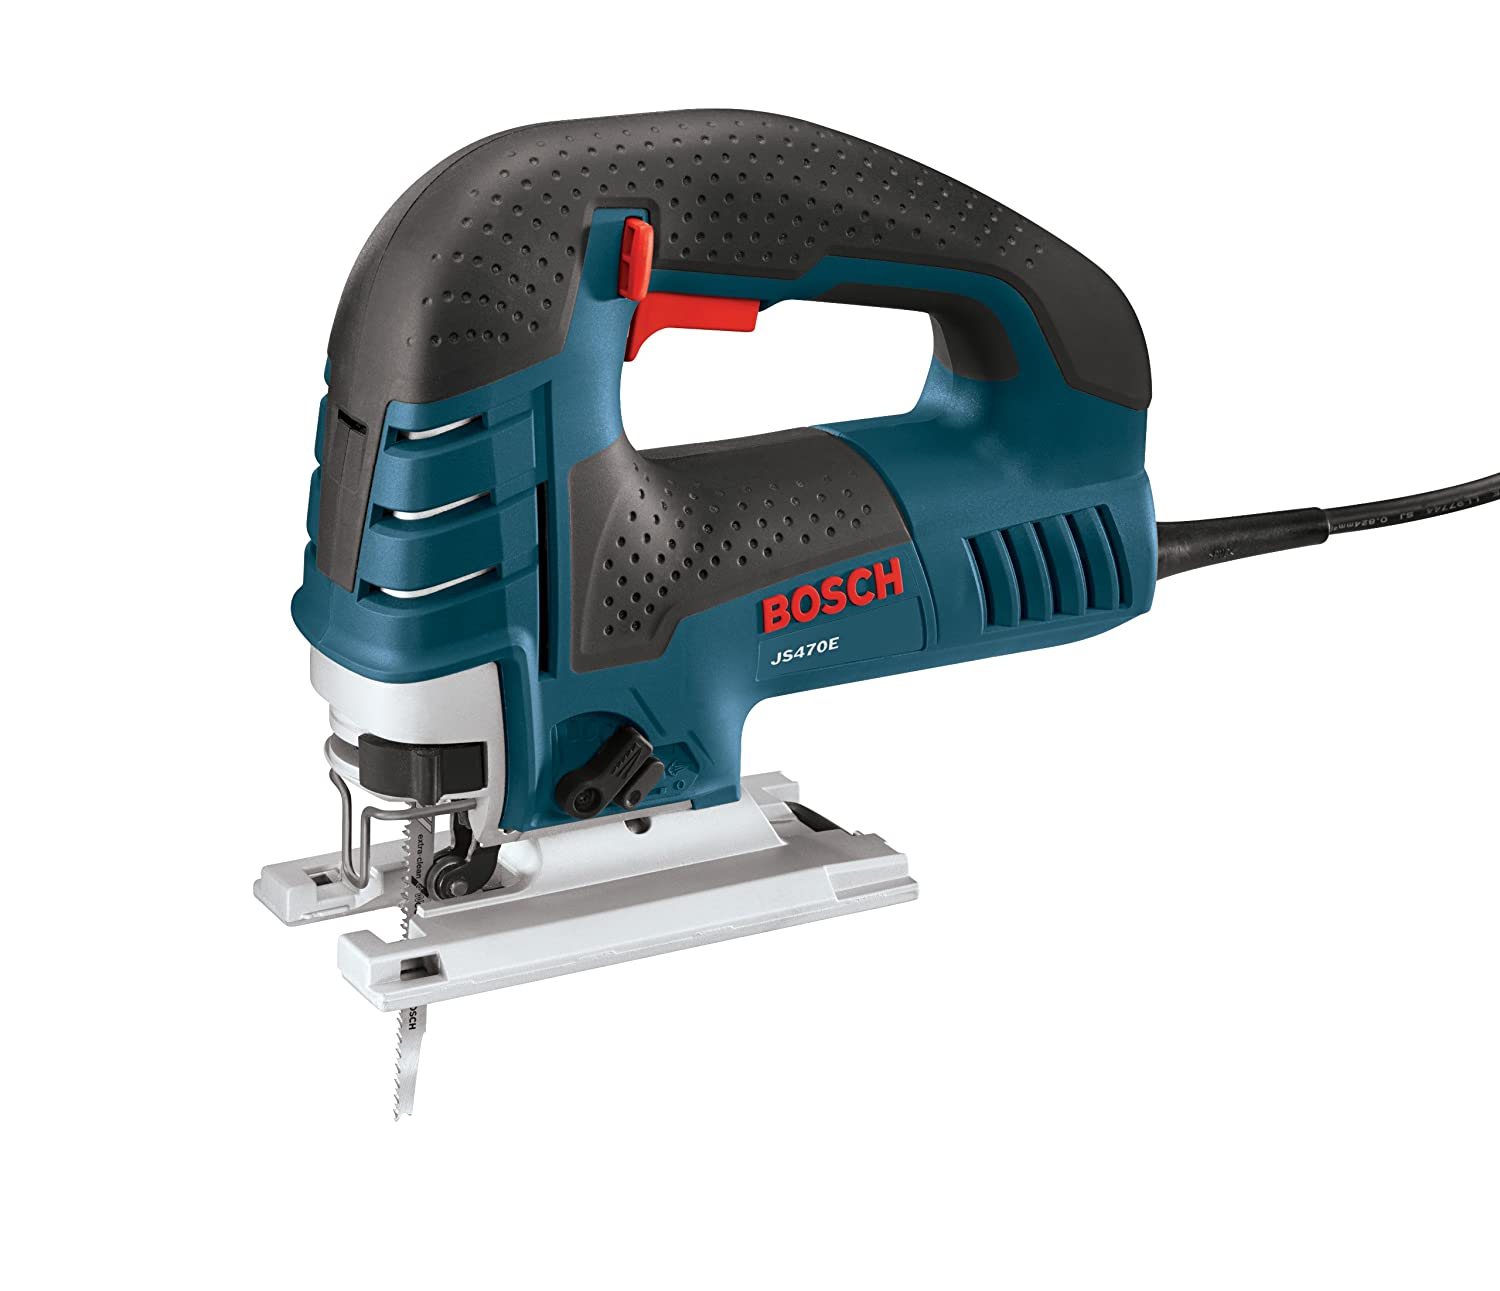 Bosch 120 volt 70 amp variable speed top handle jigsaw js470e bosch 120 volt 70 amp variable speed top handle jigsaw js470e power jig saws amazon keyboard keysfo Gallery